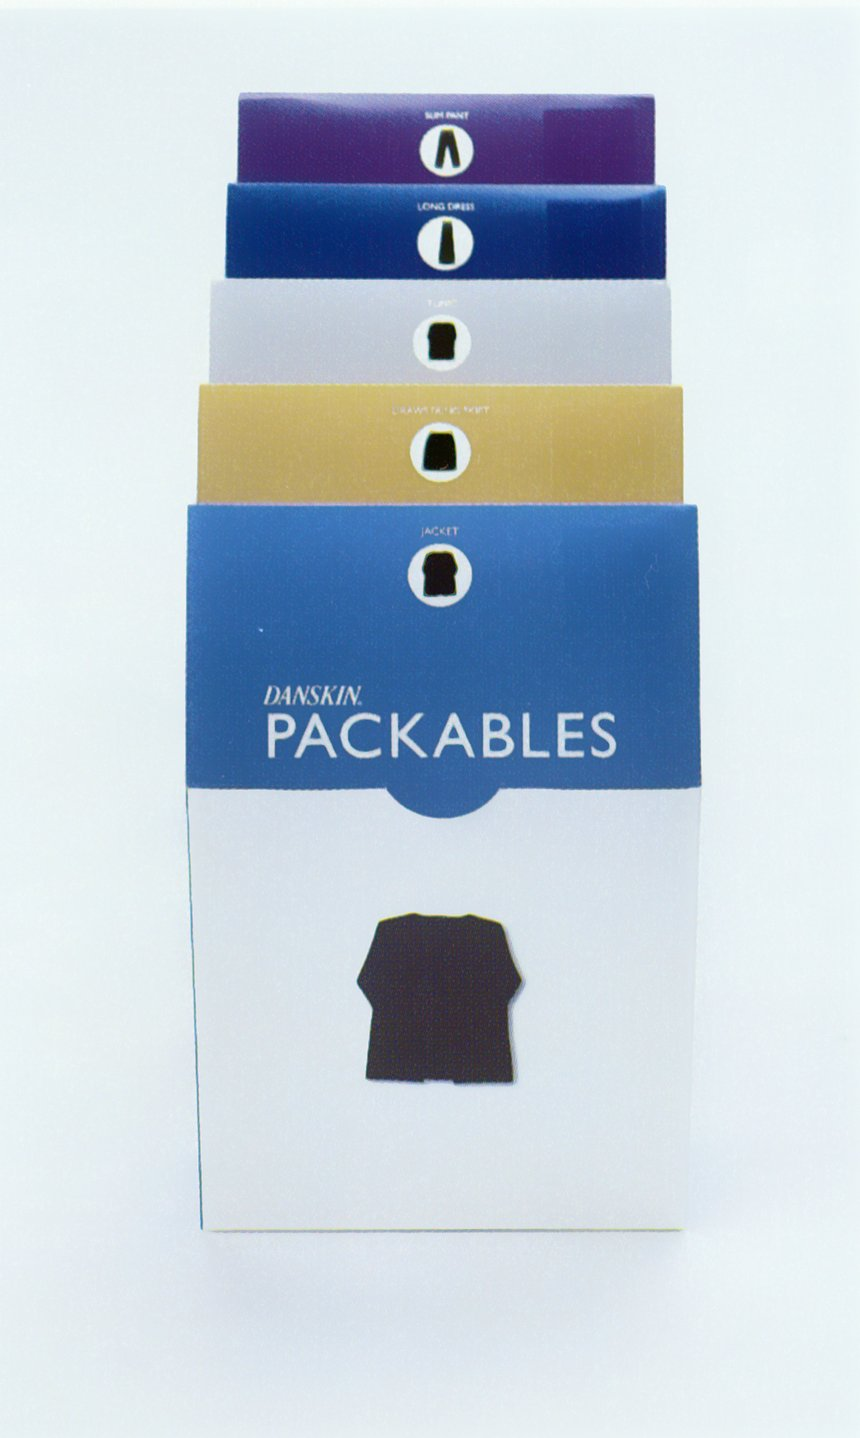 Danskin Packables Packaging